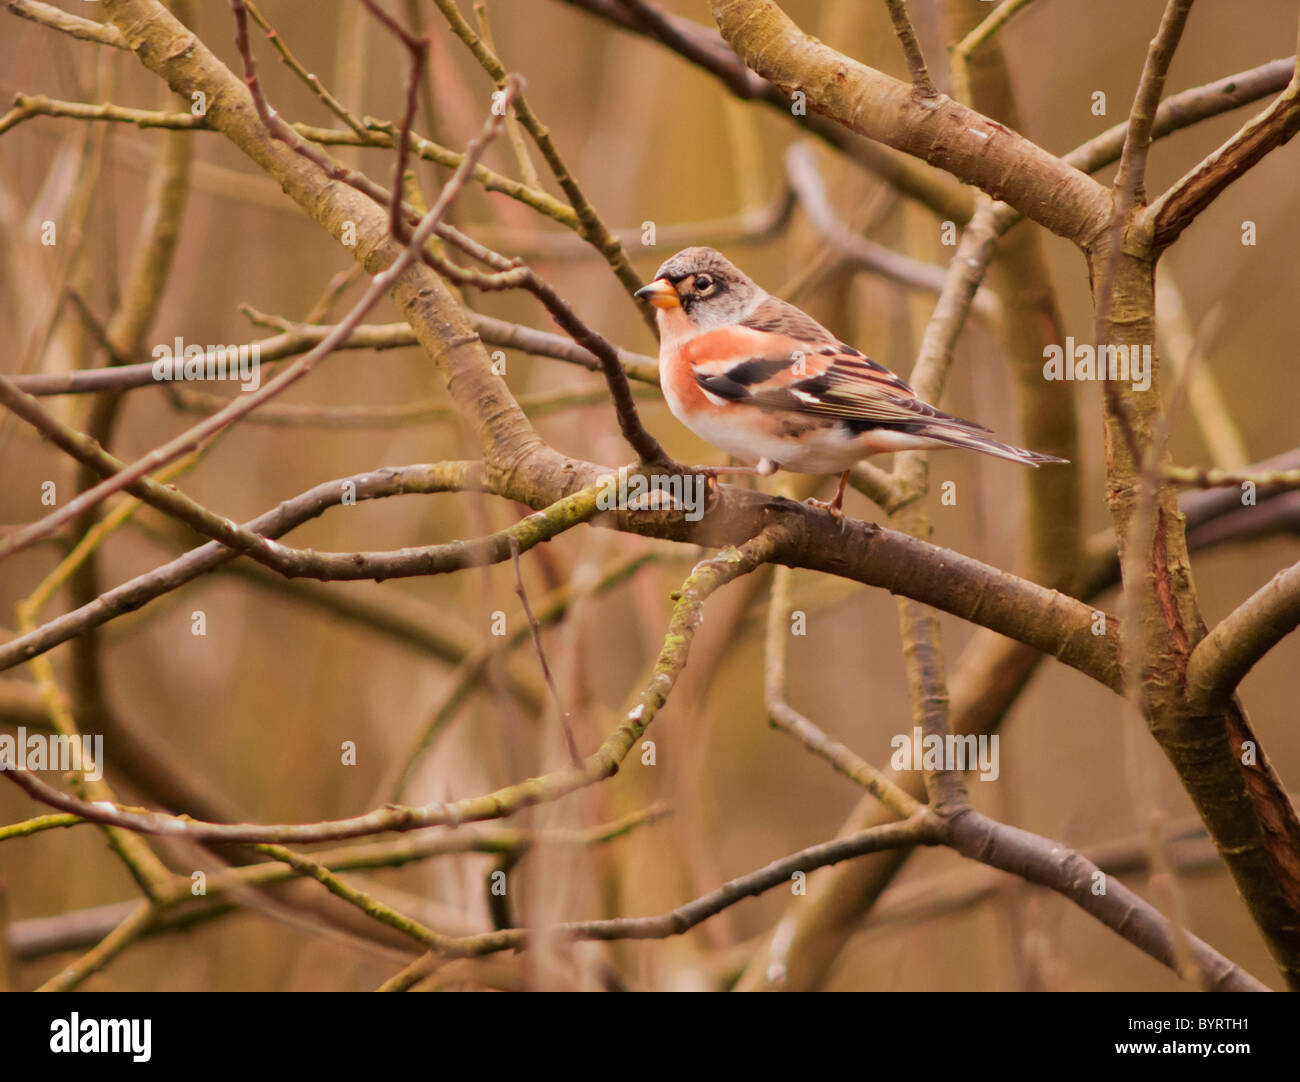 Male Brambling, Fringilla montifringilla, perched on branch - Stock Image